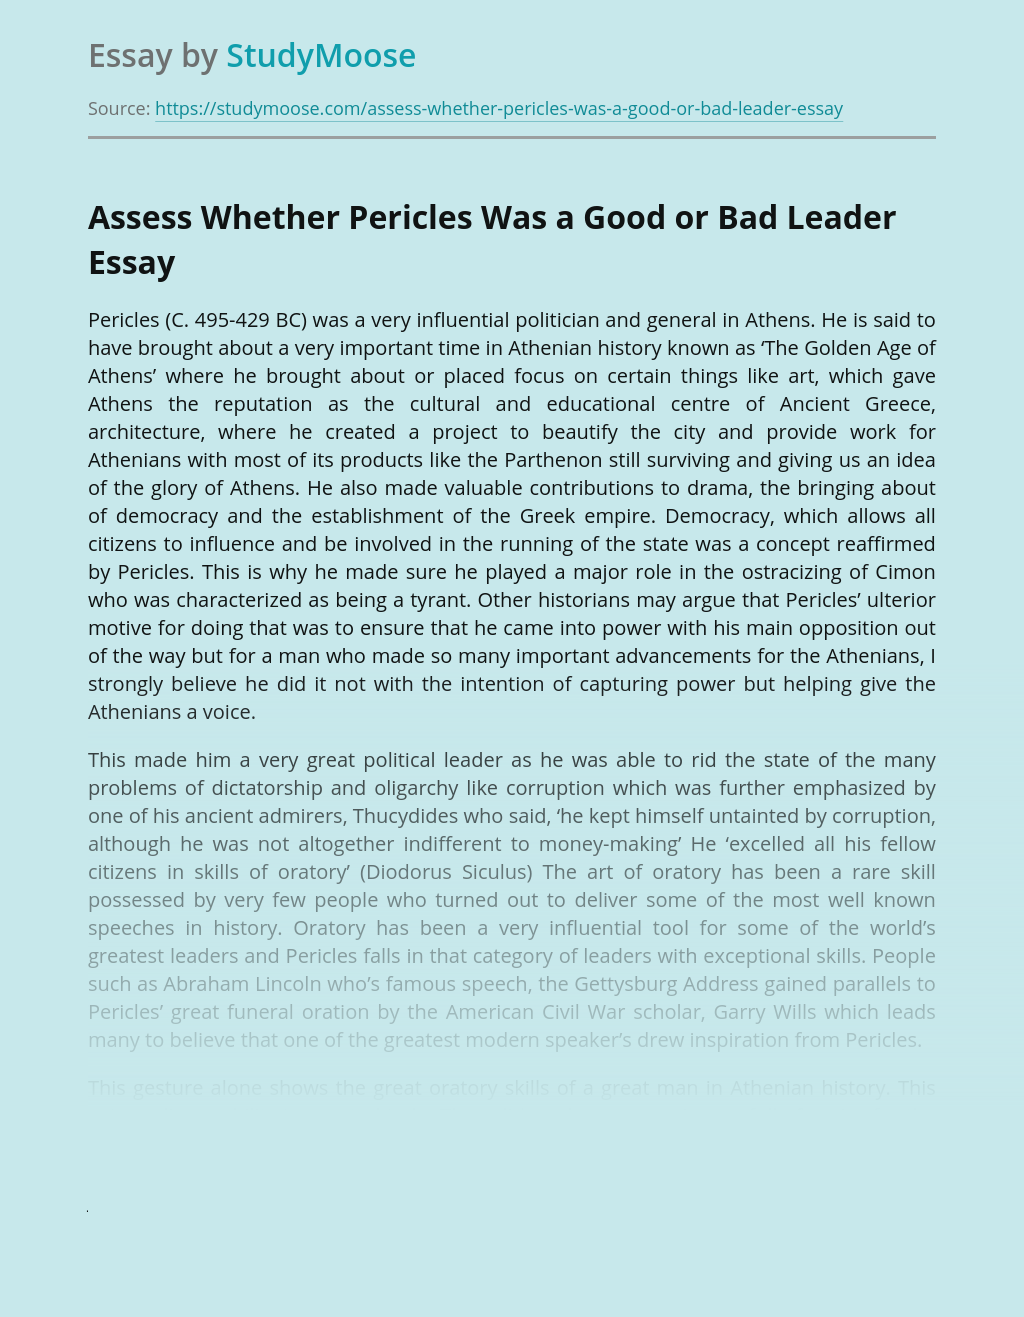 Assess Whether Pericles Was a Good or Bad Leader